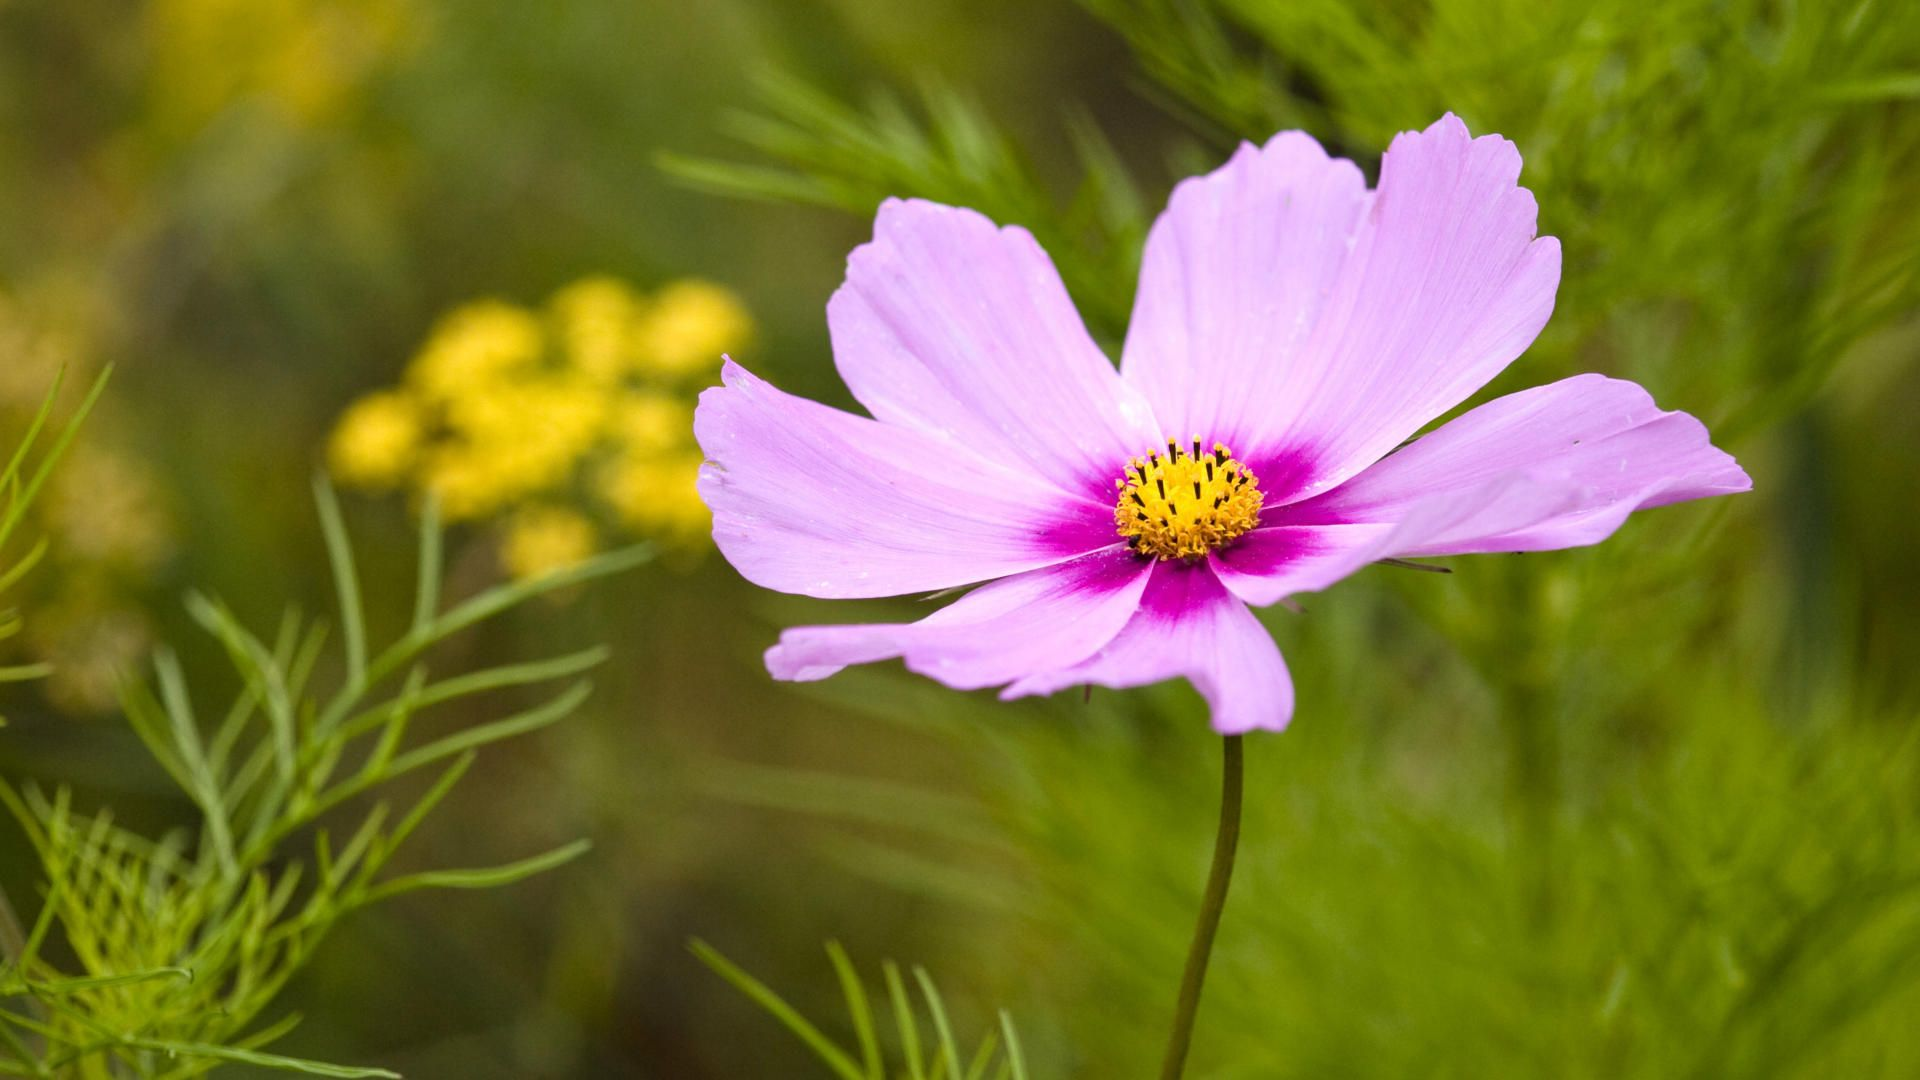 40 beautiful flower wallpapers free to download cosmos aster 40 beautiful flower wallpapers free to download voltagebd Gallery